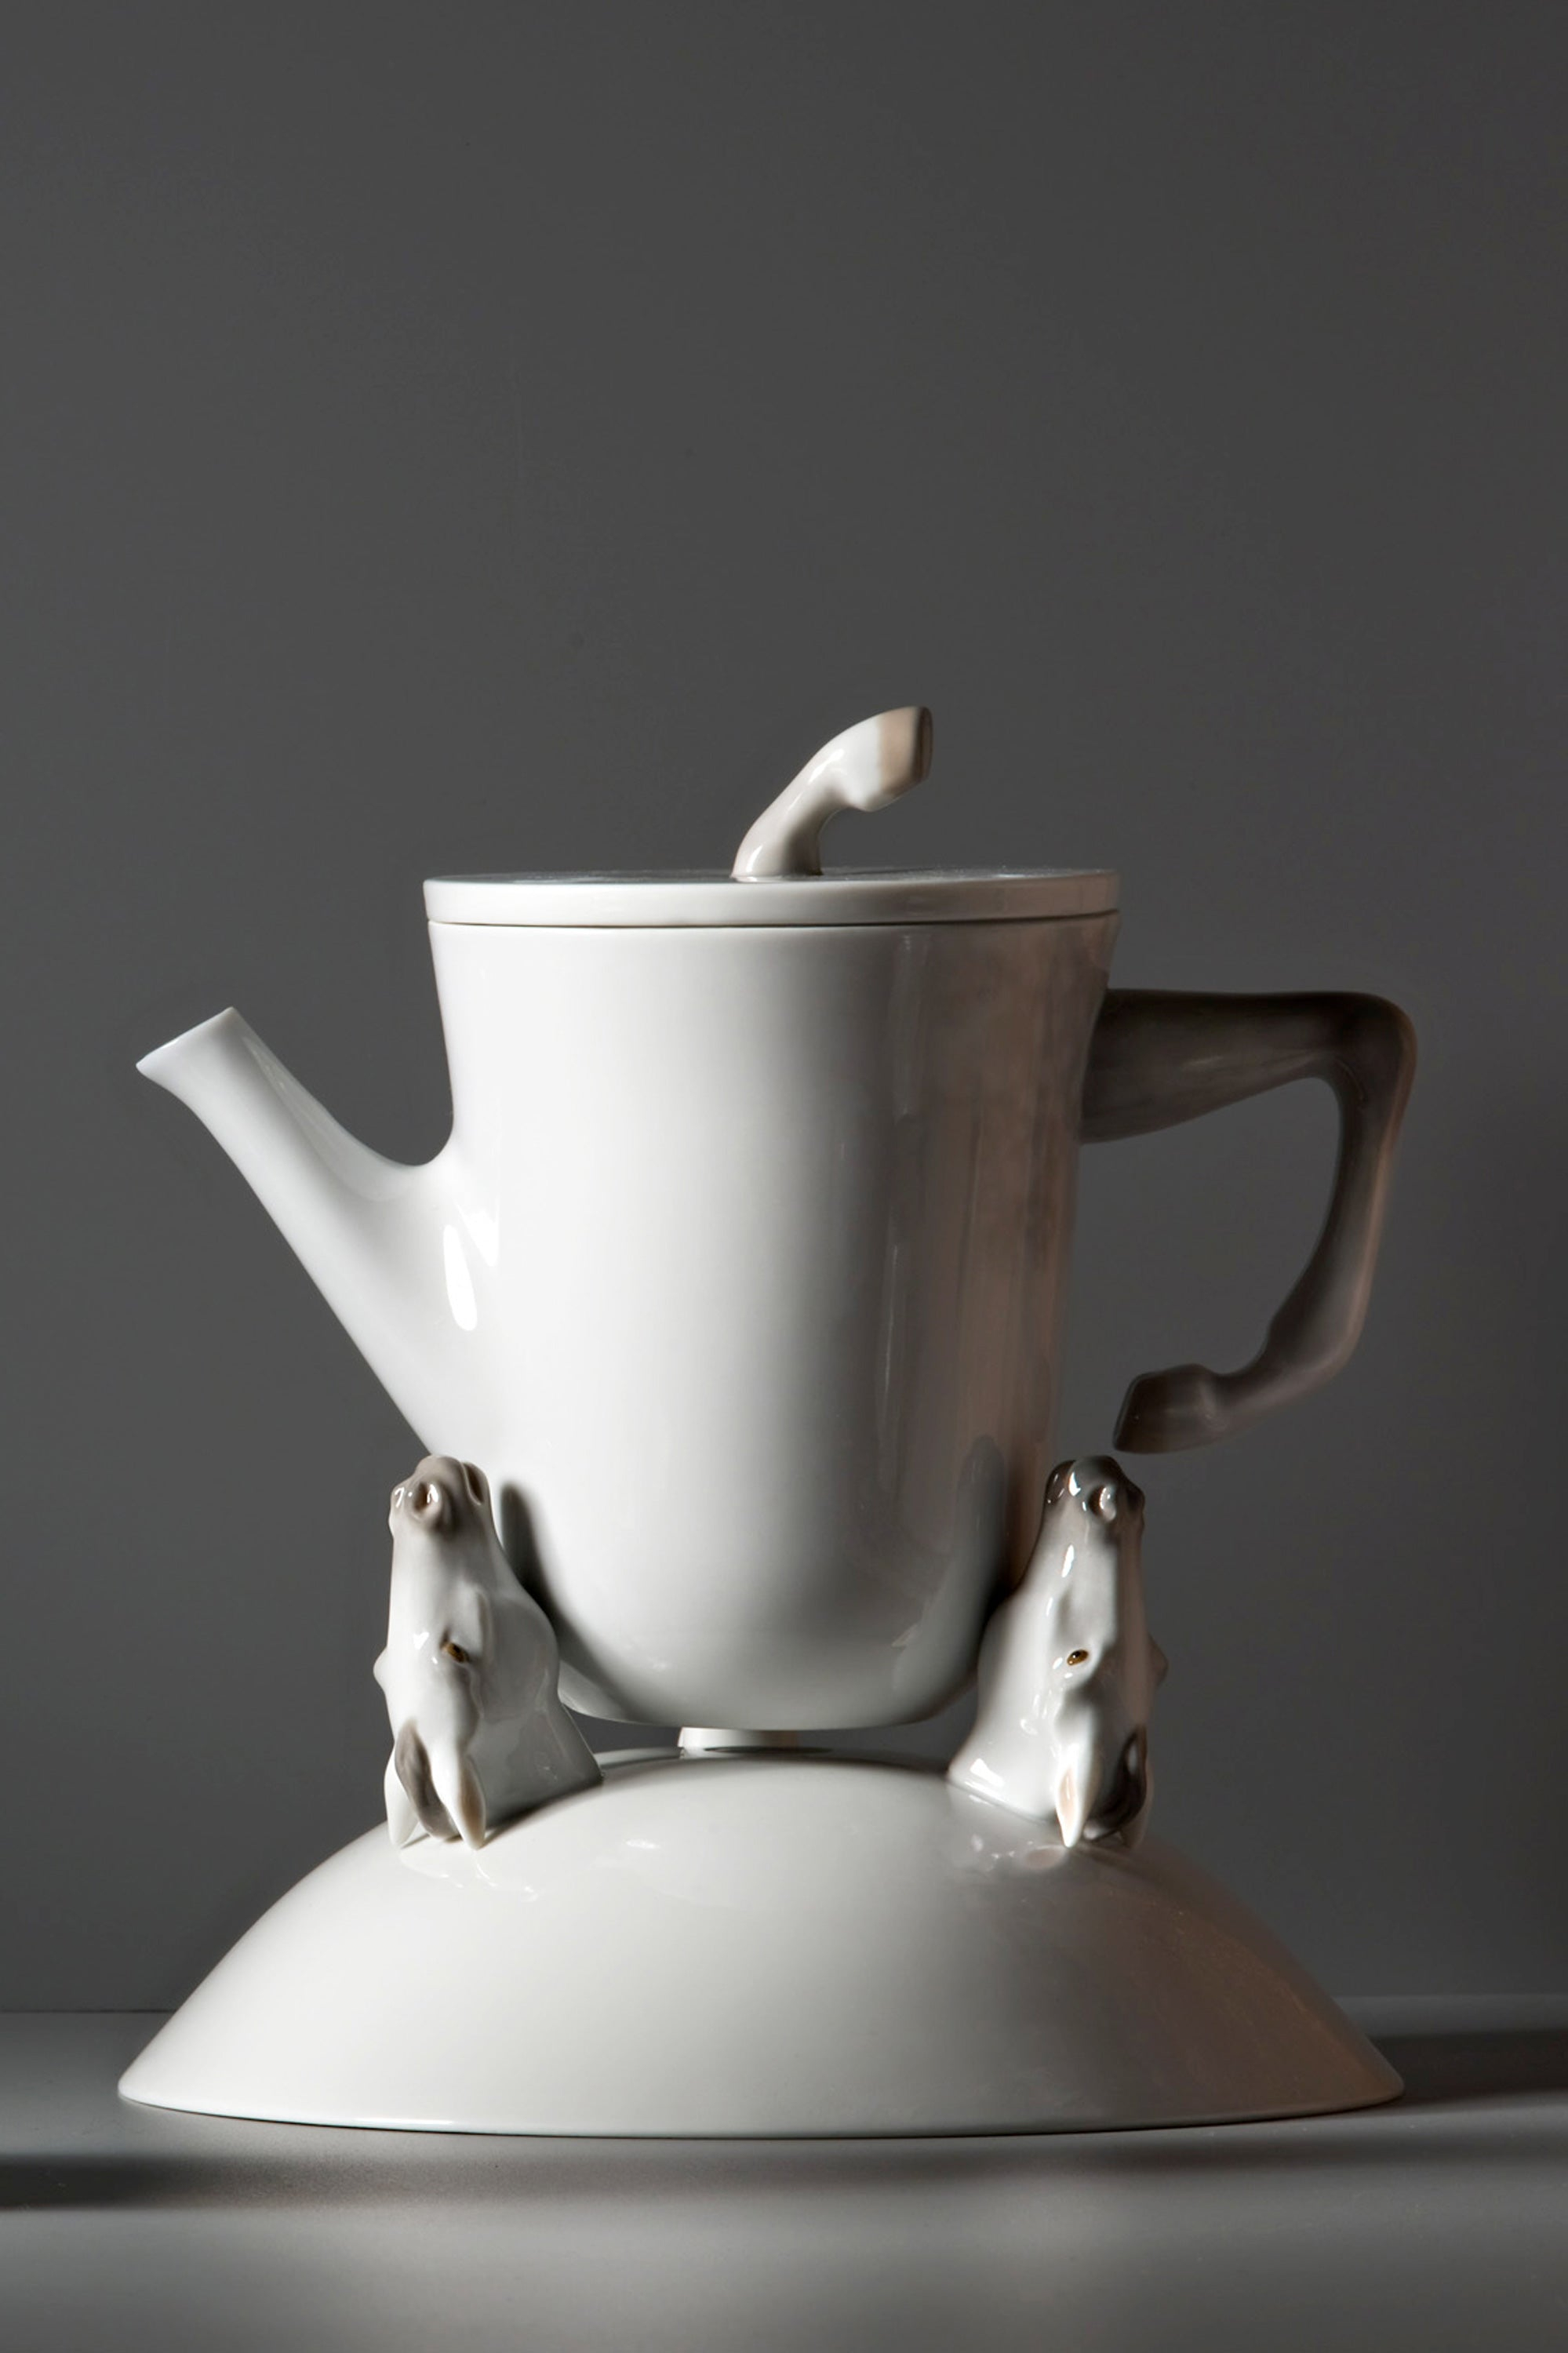 Lladro Equus Teapot & Bowl Designed by London Based Studio Bodo Sperlein